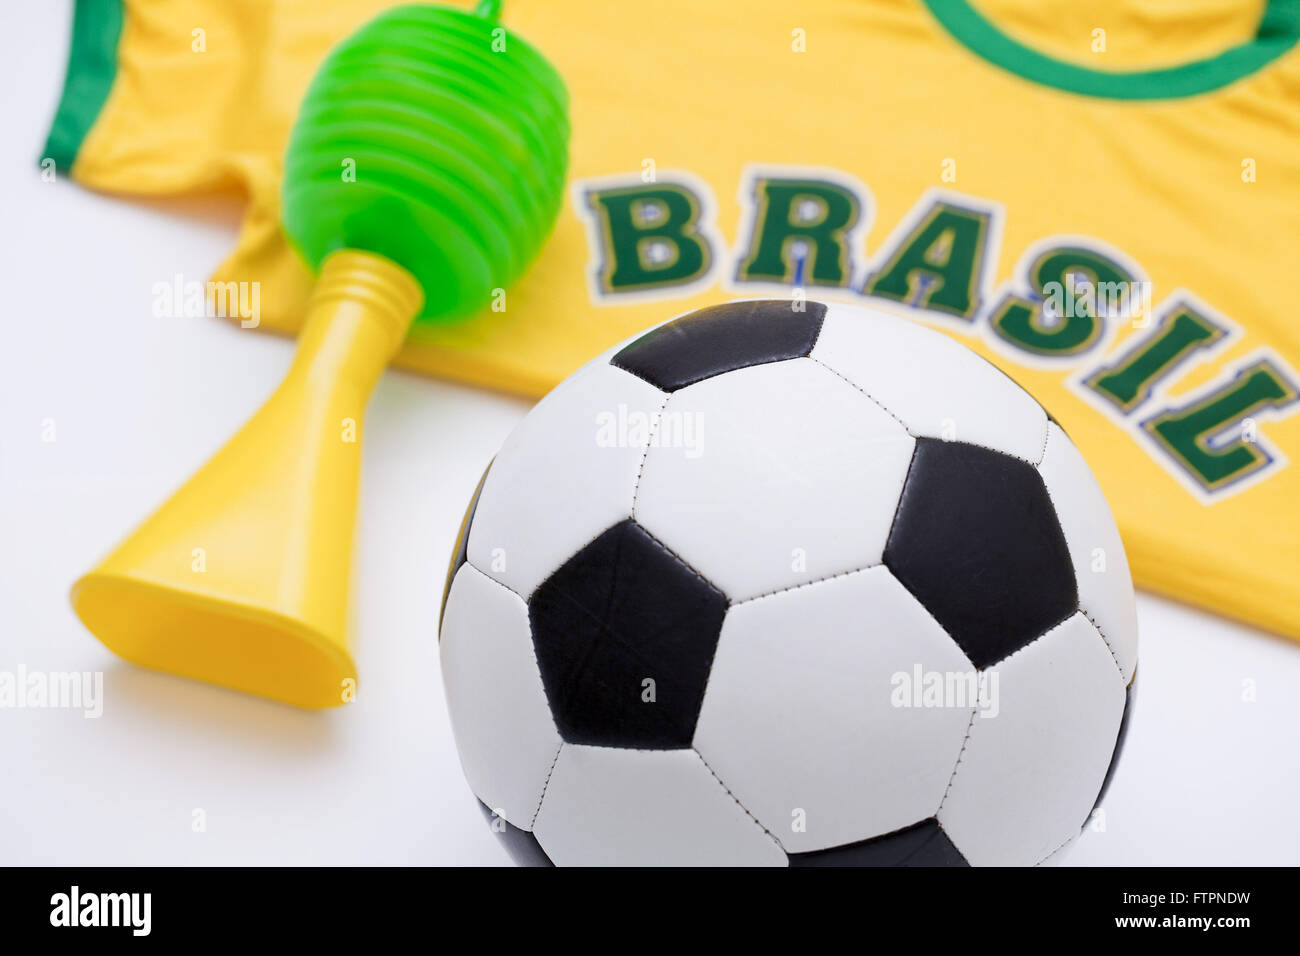 Football shirt and horn - twisted props of the Brazilian selection - Stock Image